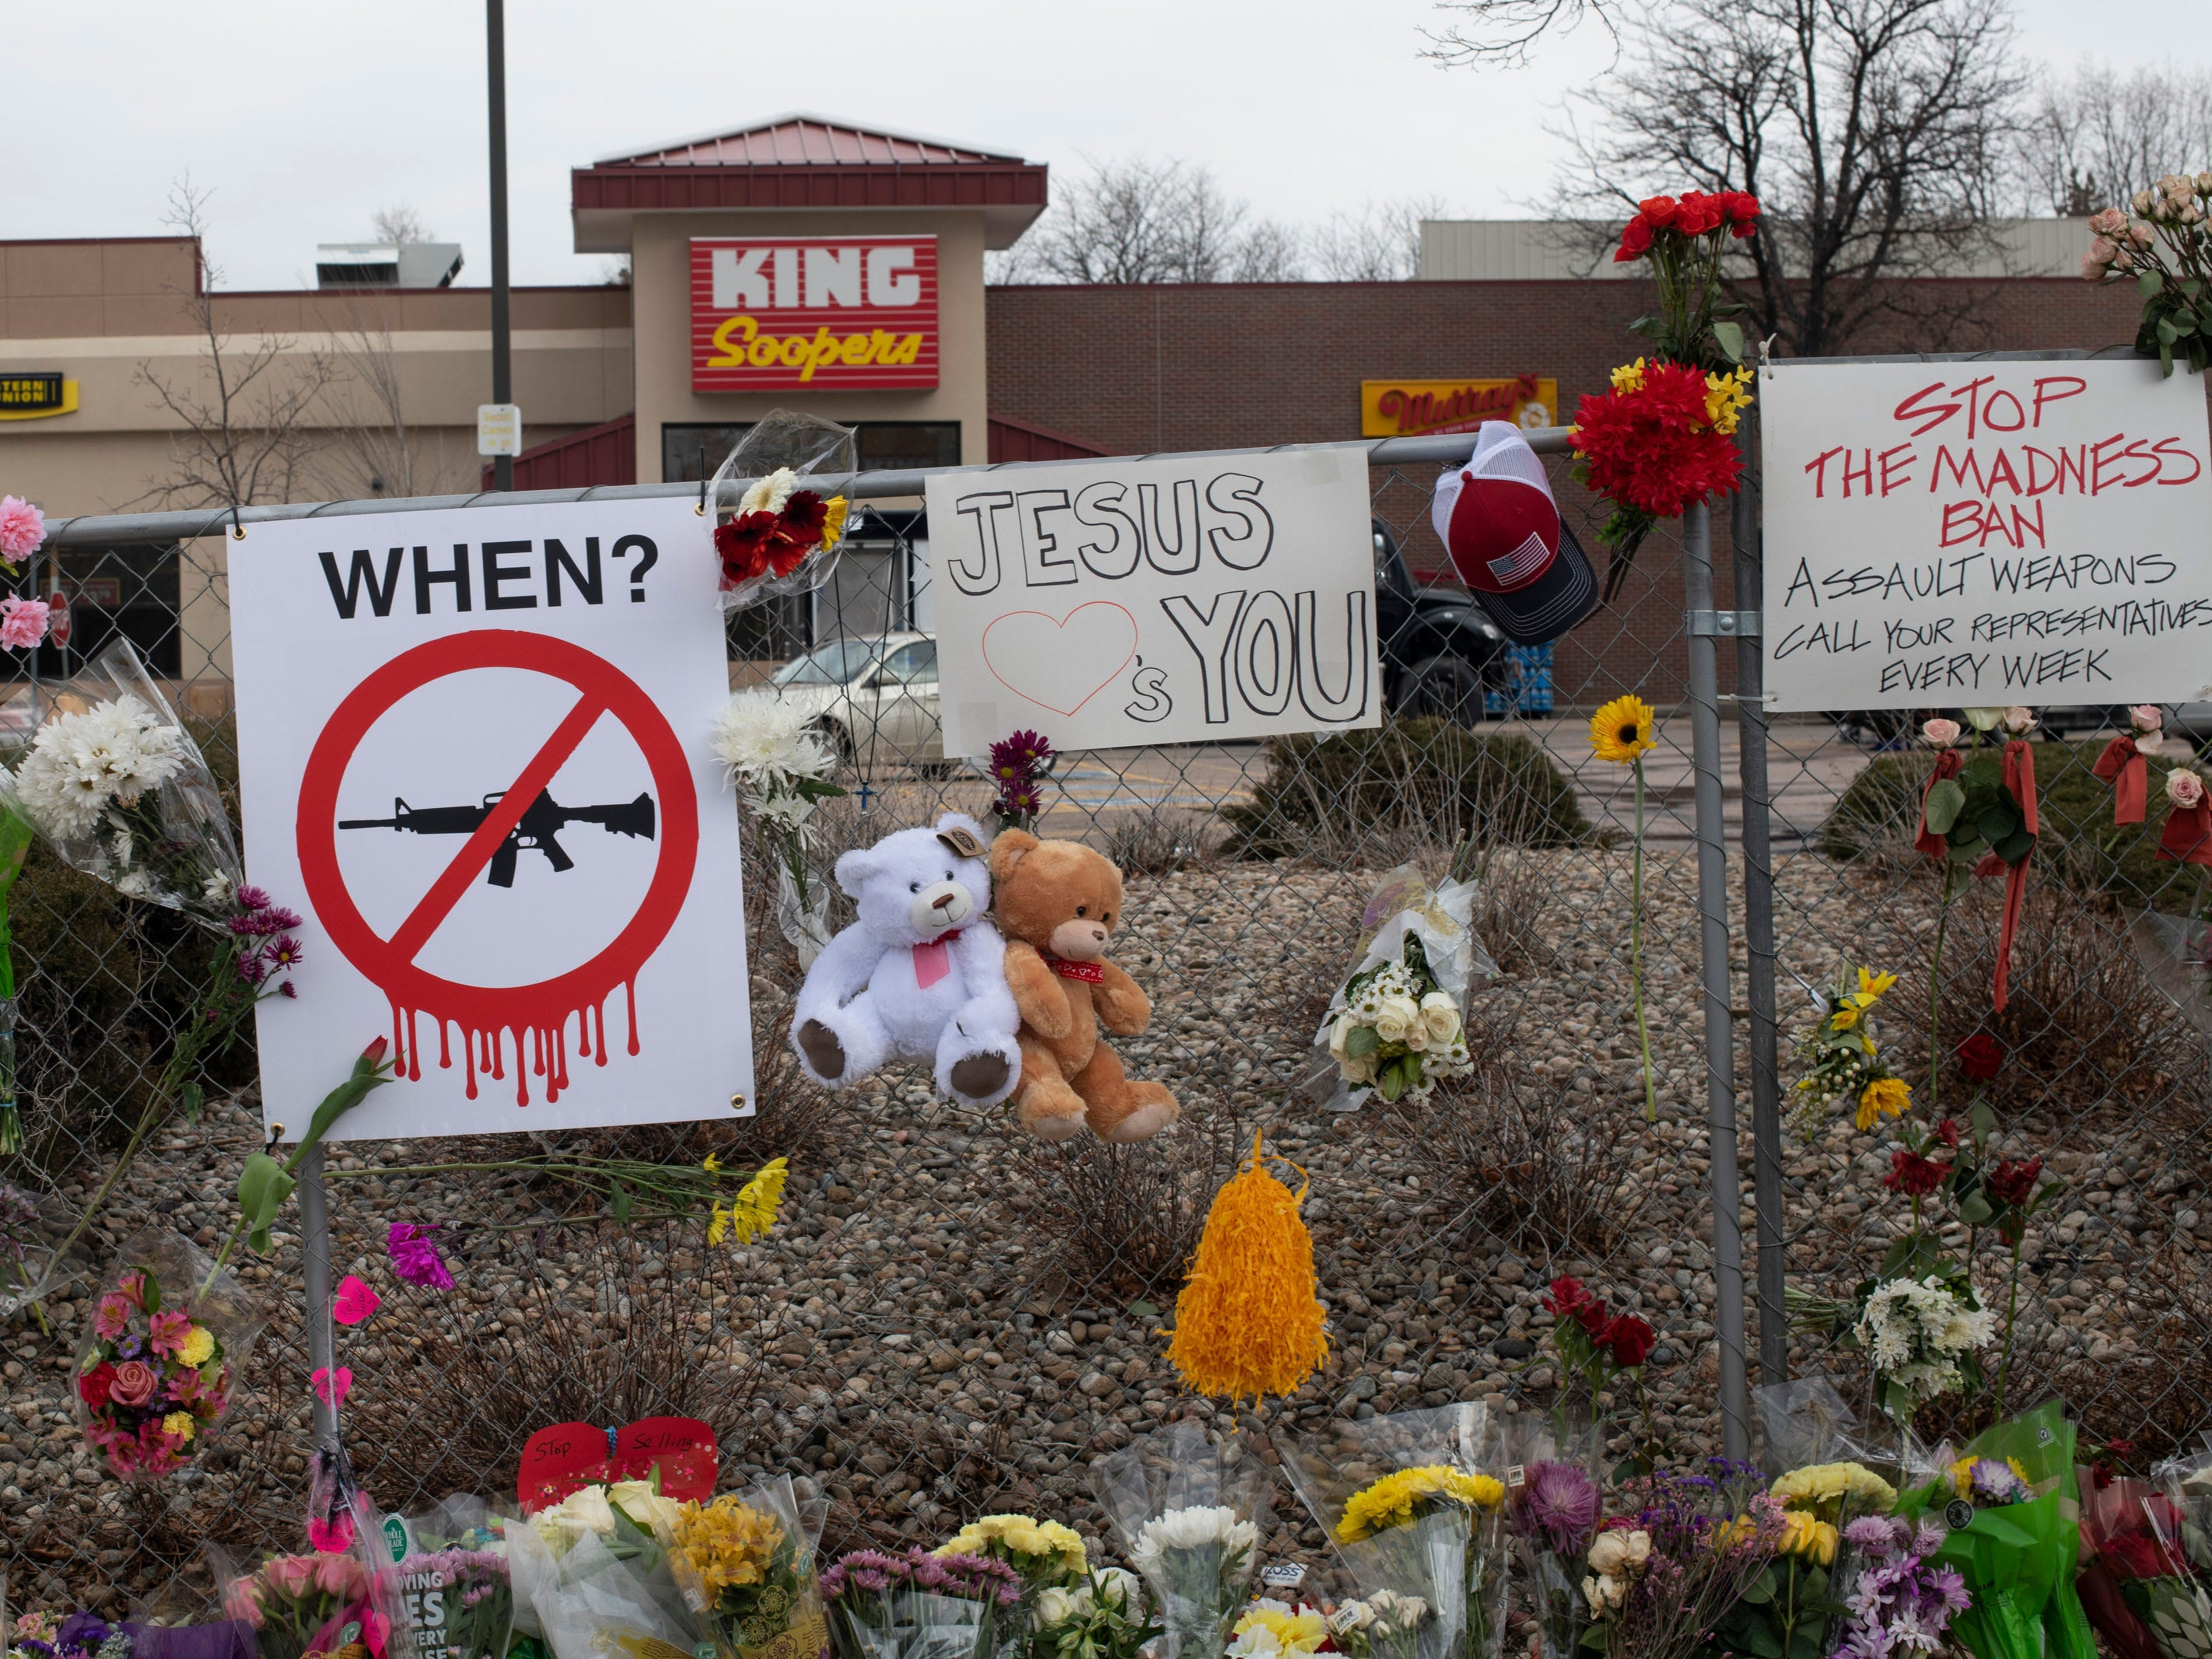 How Boulder residents are coping with the King Soopers rampage, three months later 1